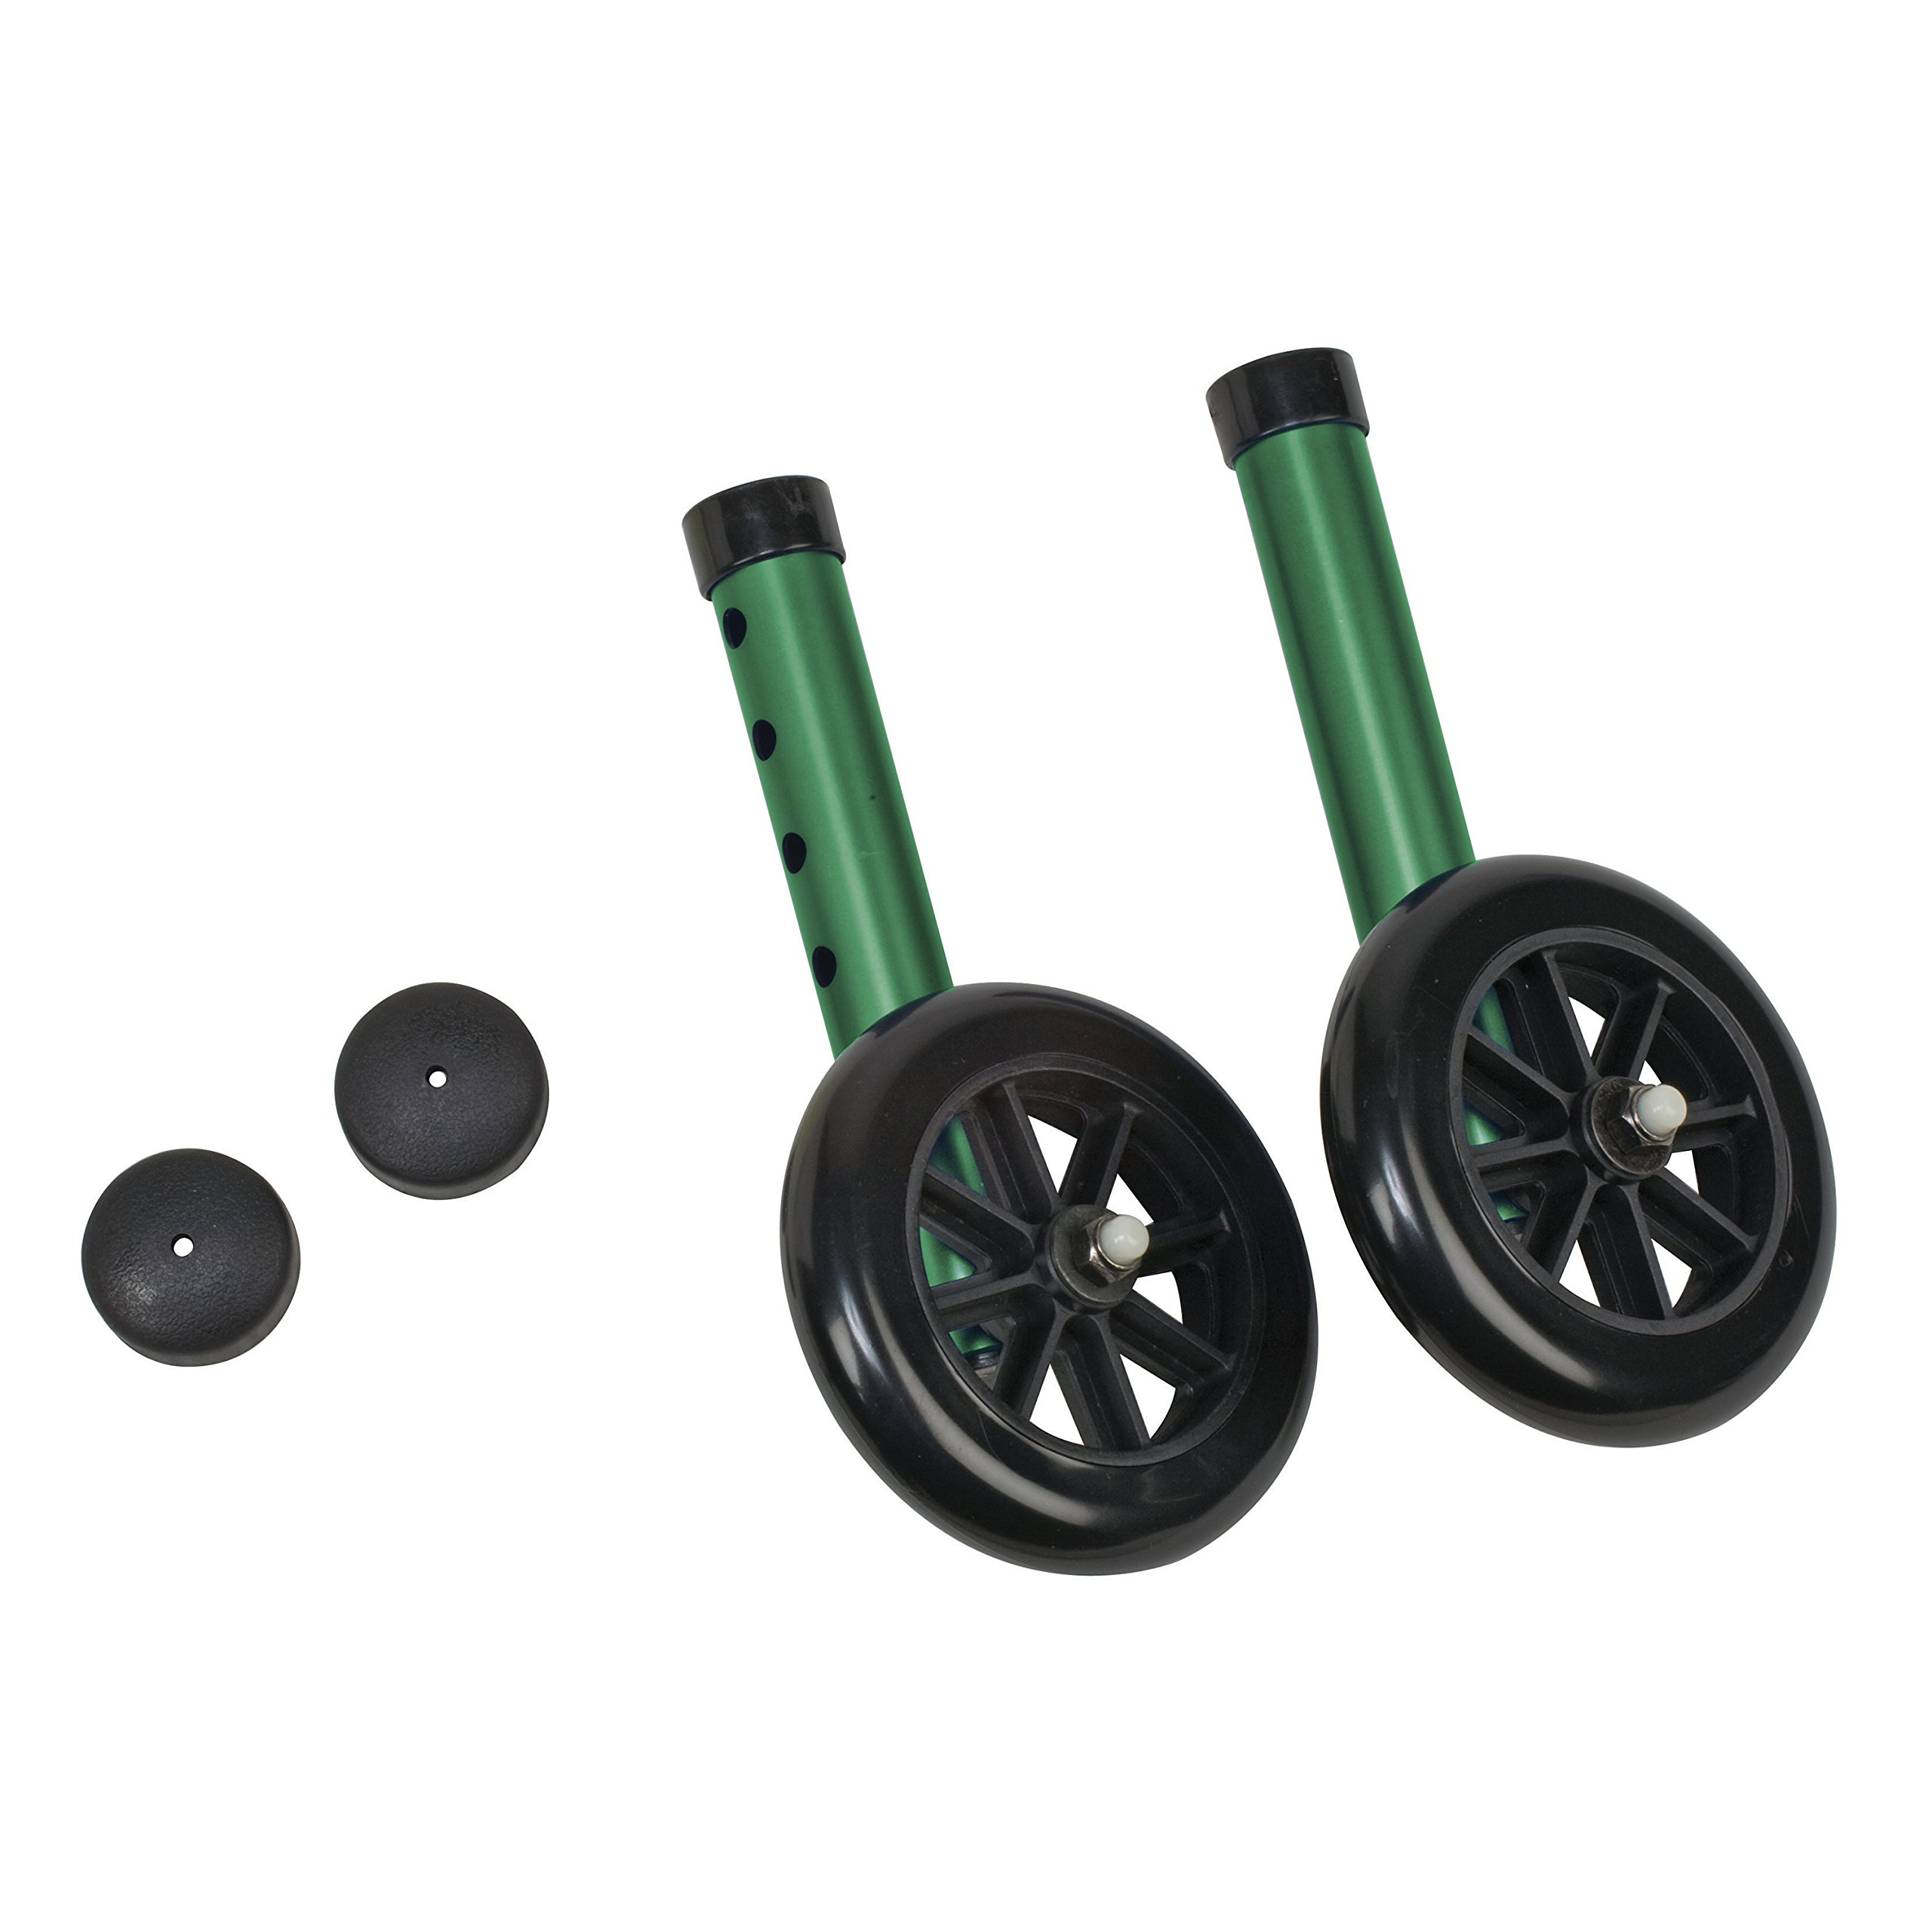 DMI Walker Wheels with Glide Caps, Green, One Pair